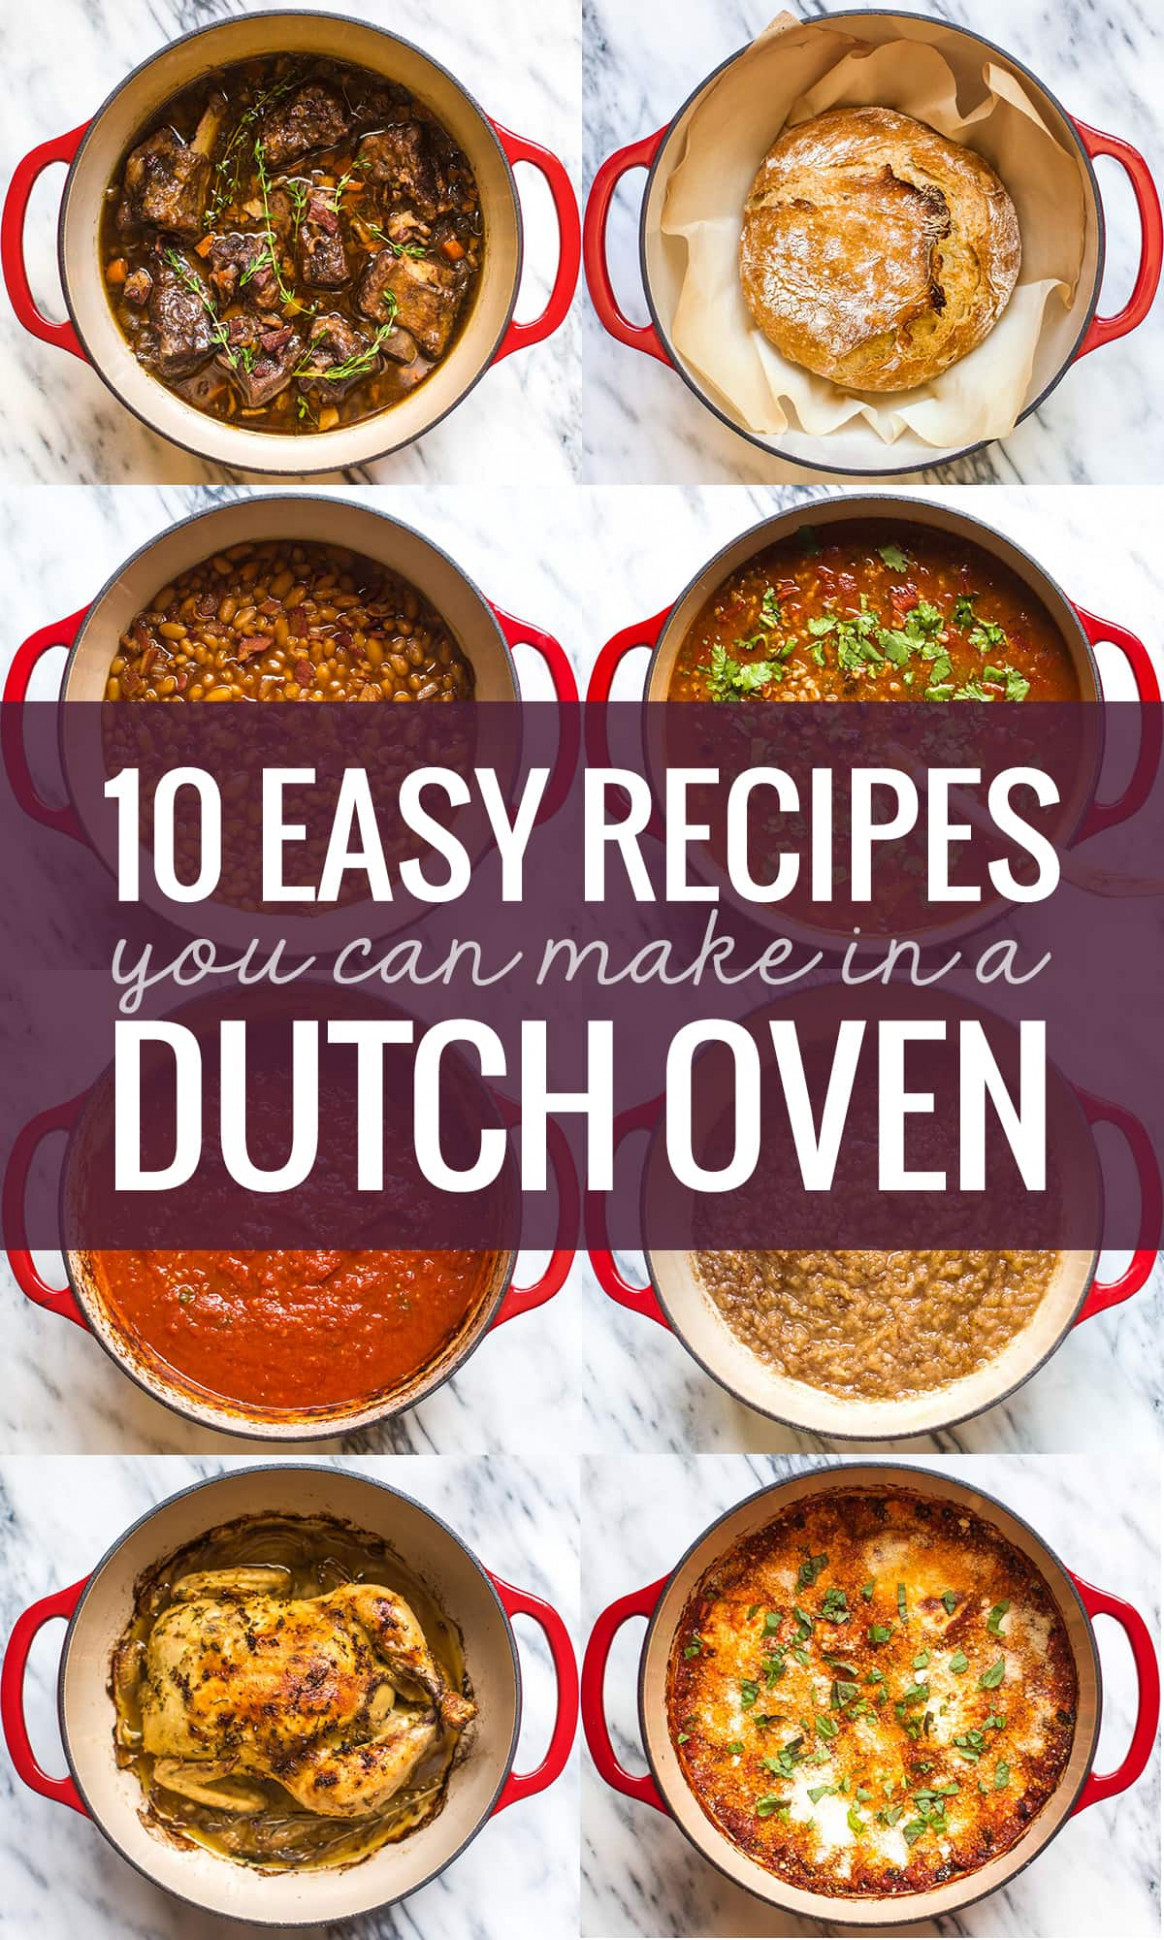 10 Easy Recipes You Can Make in a Dutch Oven | Pinch of ...